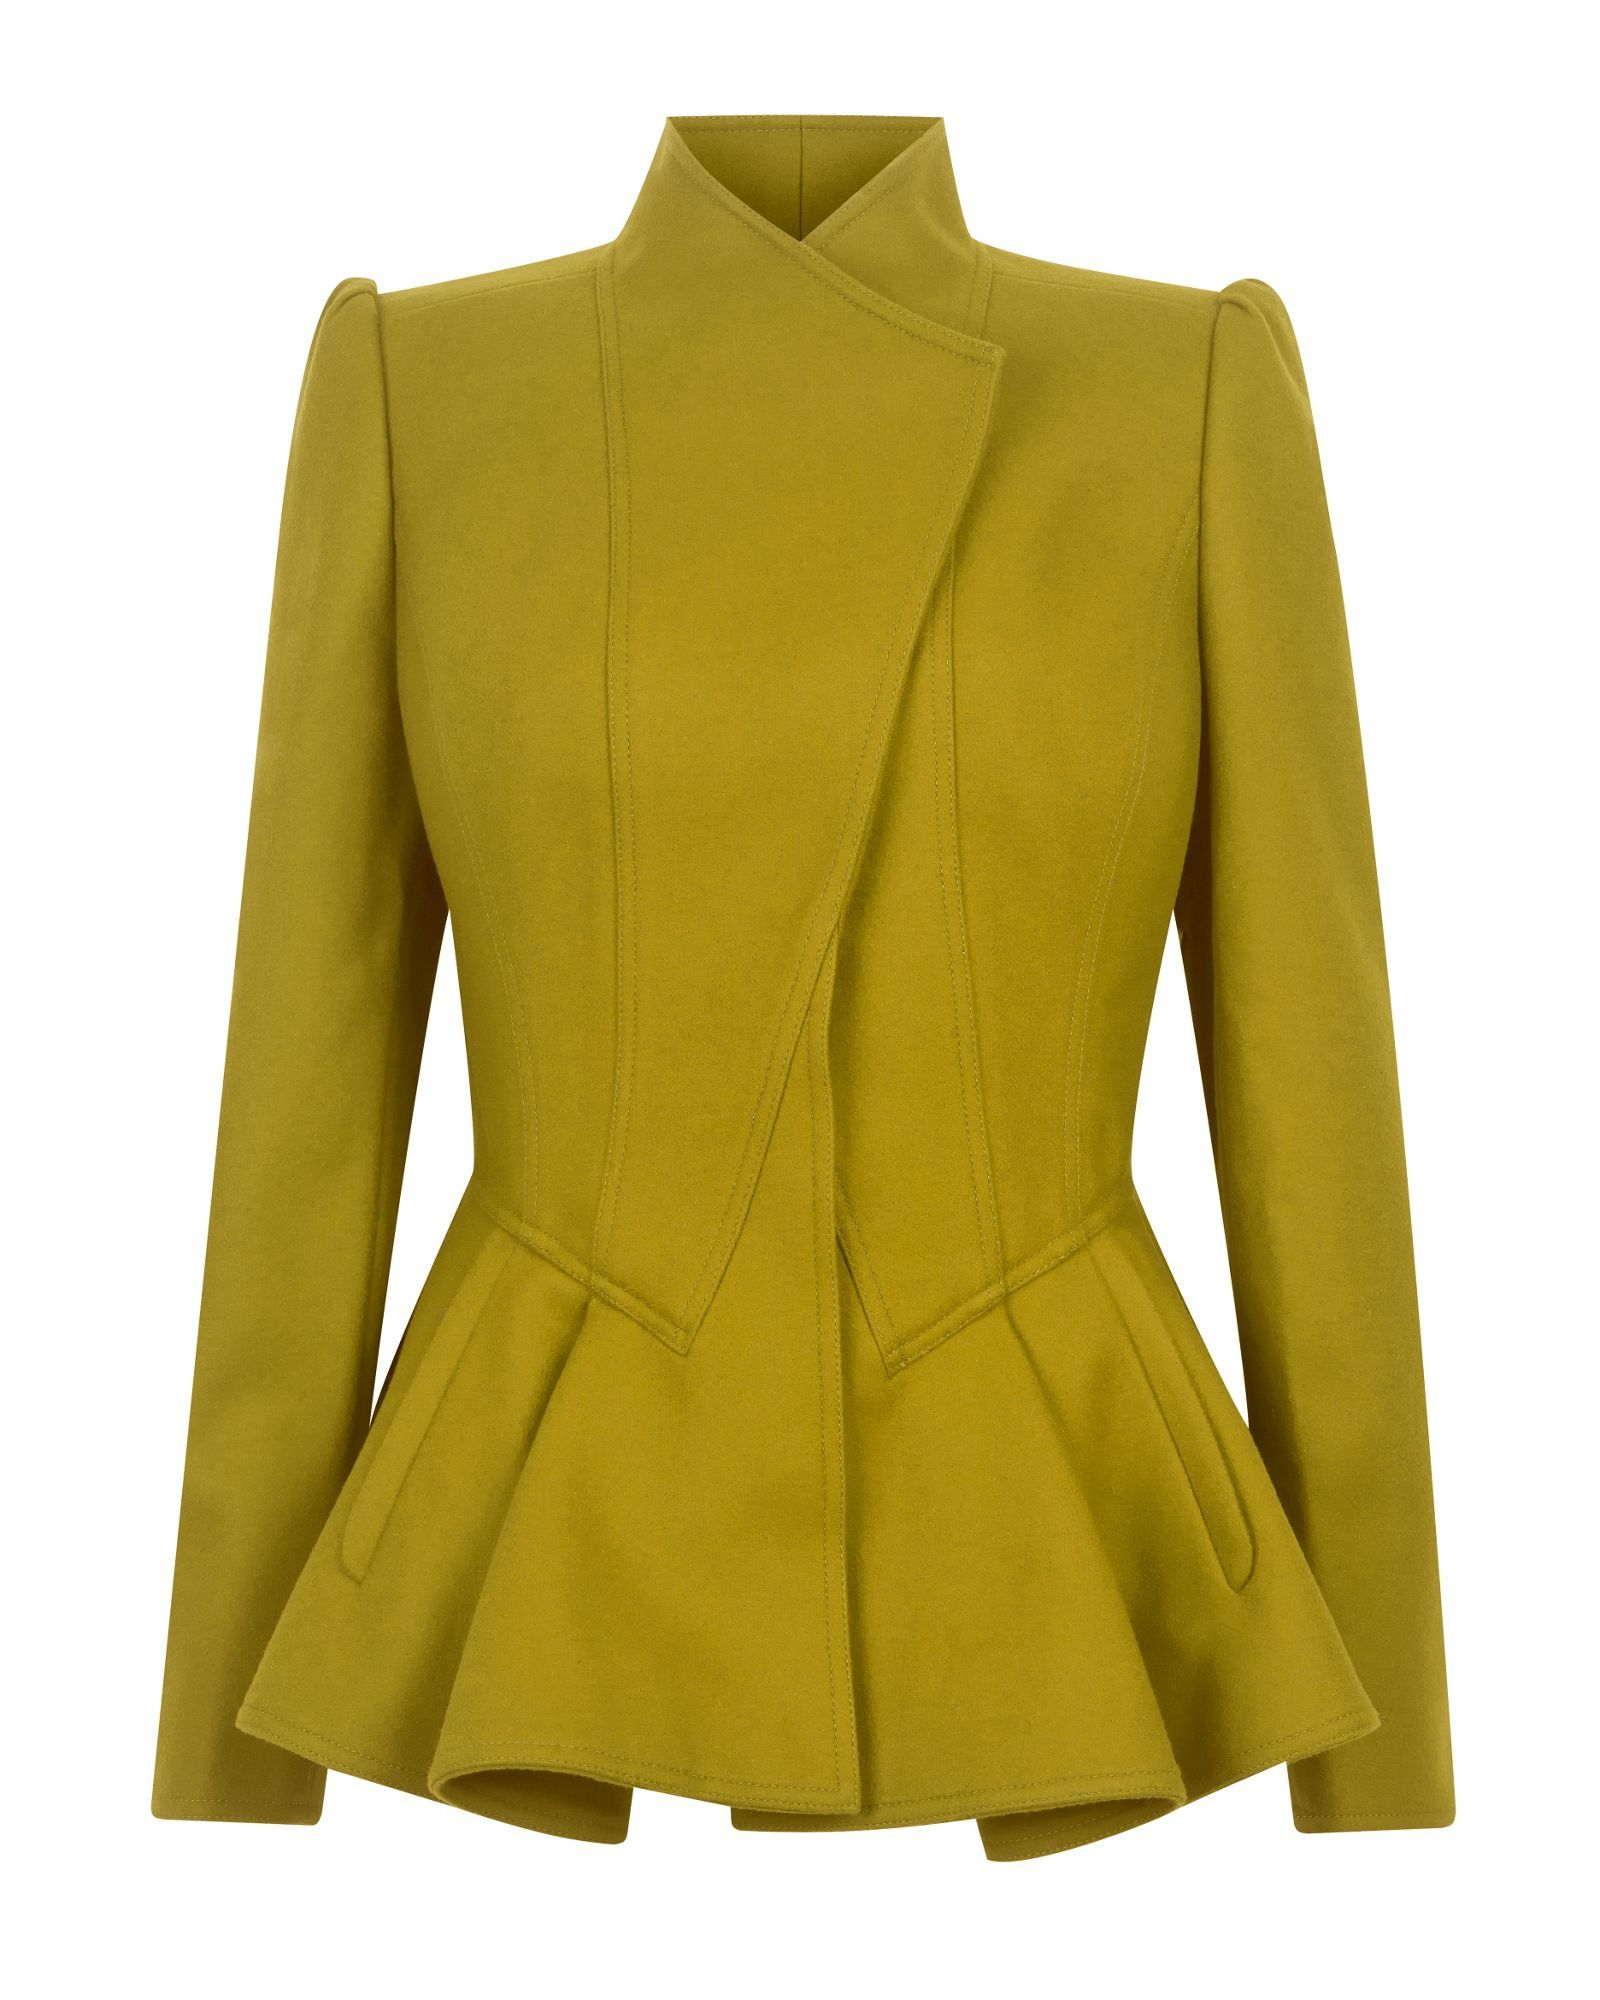 98c170c51 Ted baker Wrenn Wool Peplum Jacket in Green